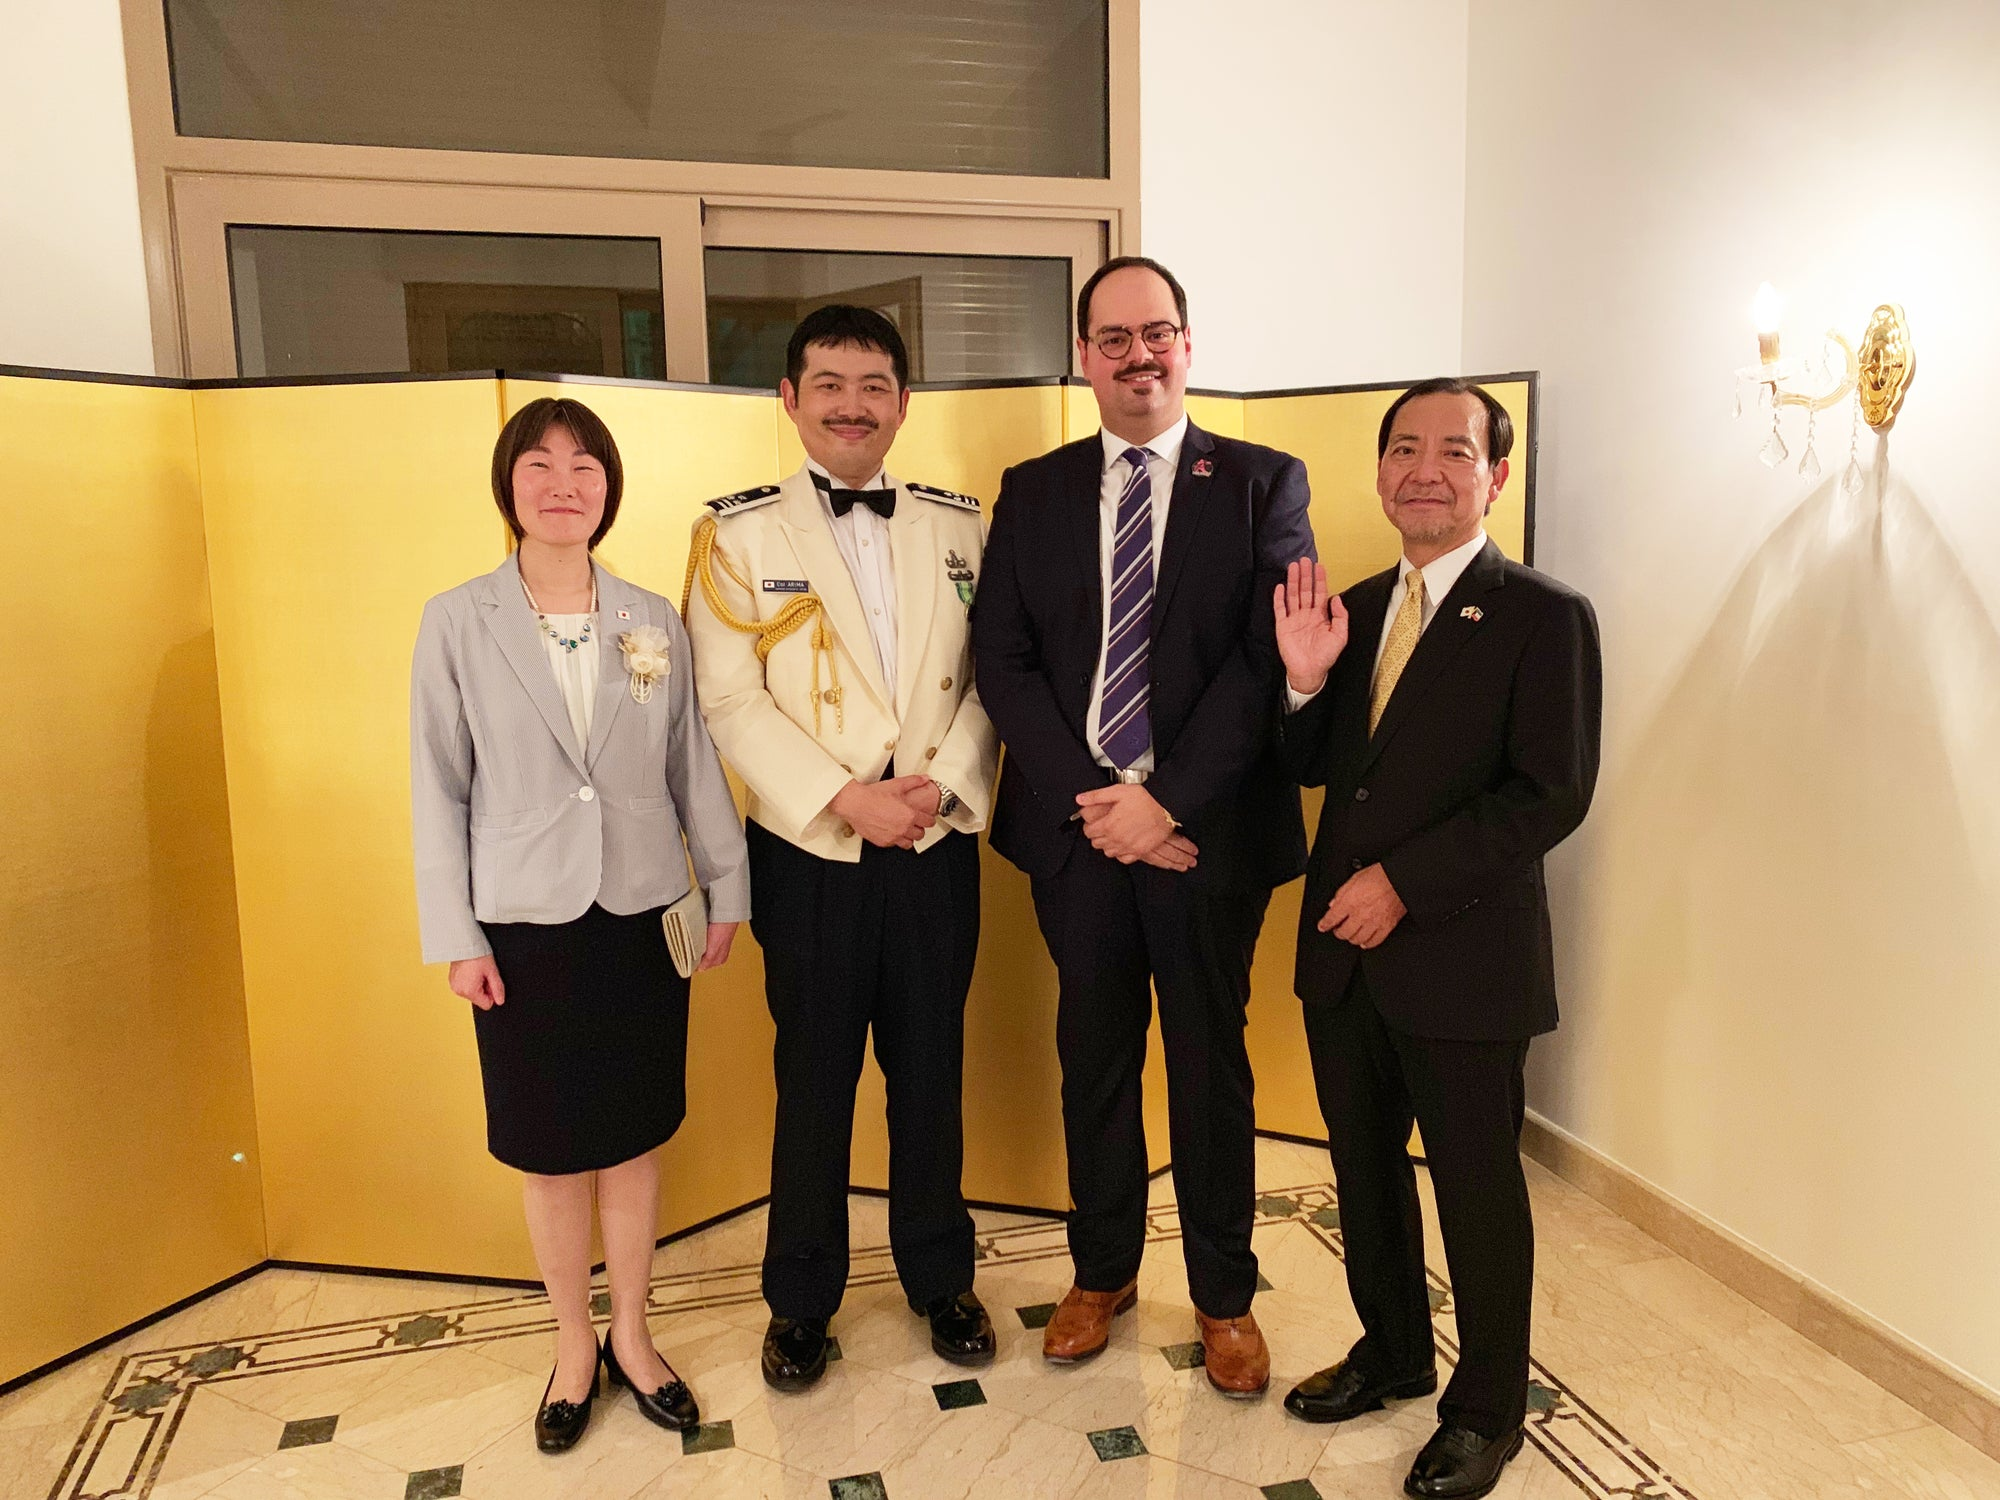 Figurama Collectors CEO, Mr. Shanab, Honored with Invitation to 65th JSDF Day Reception